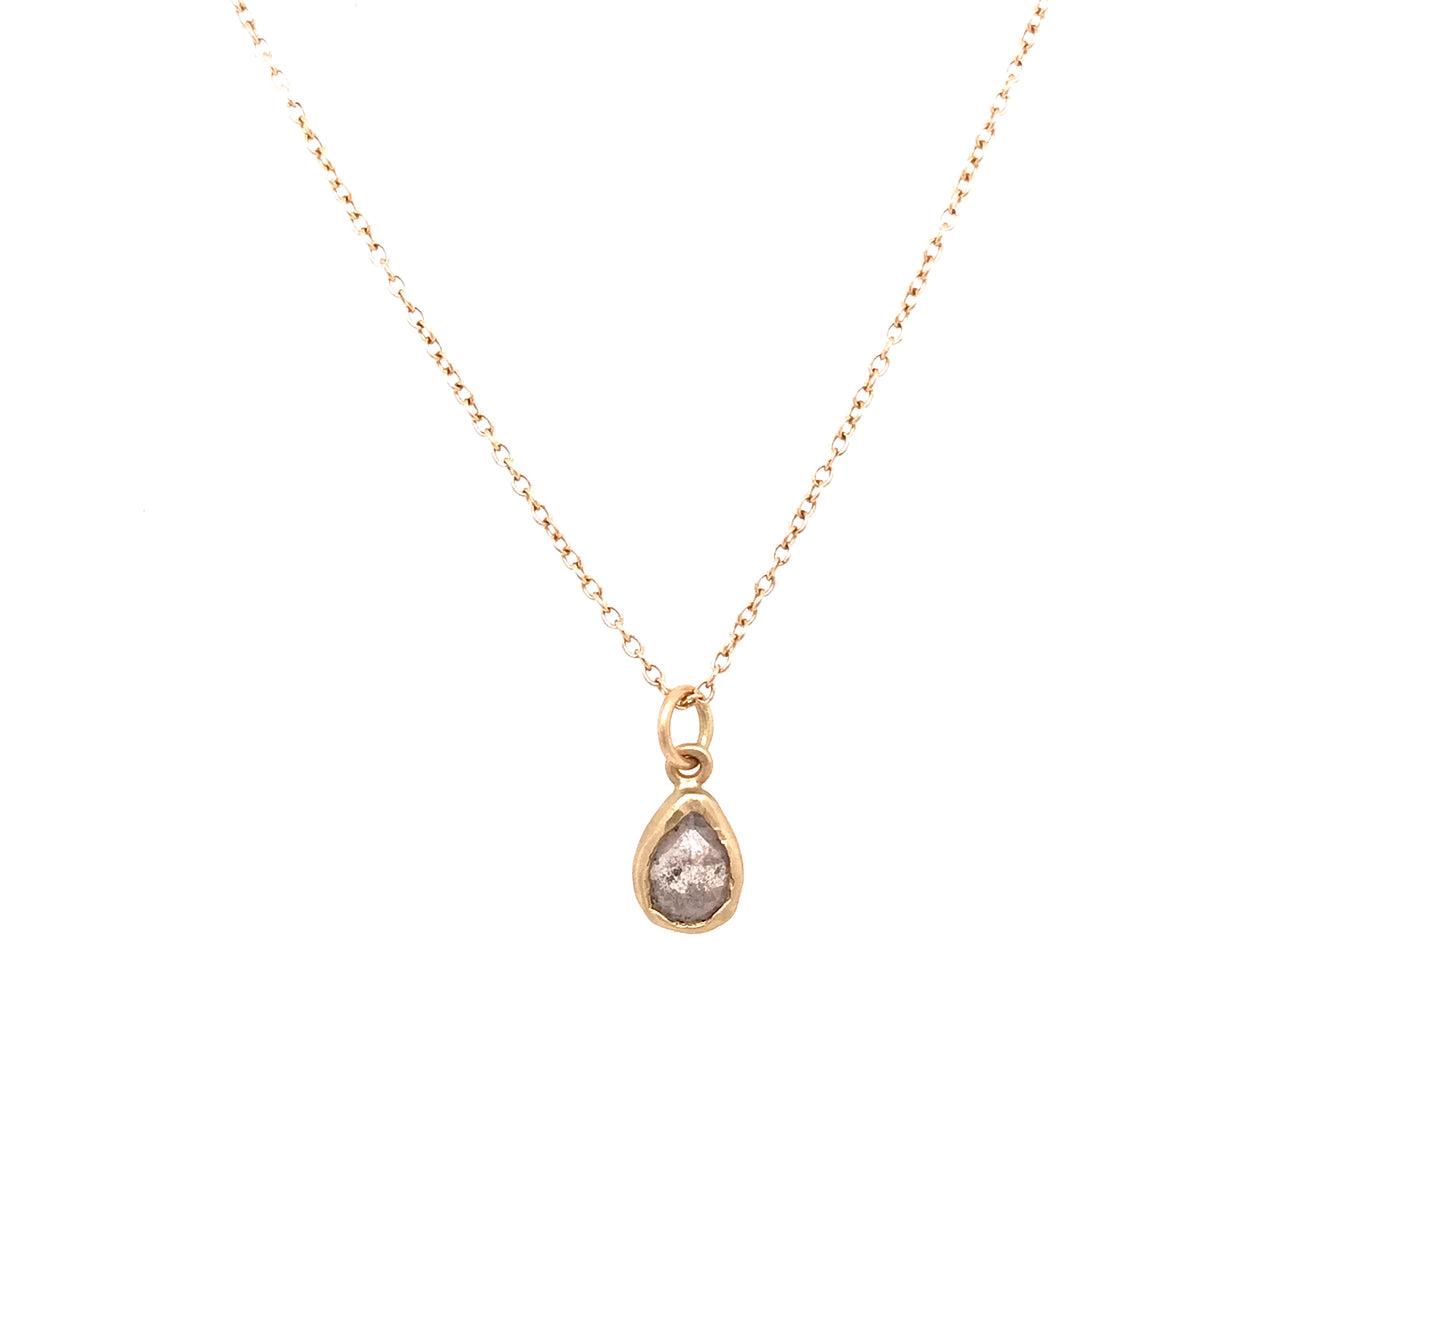 Rose Cut Salt + Pepper Diamond Pendant Necklace | Art + Soul Gallery